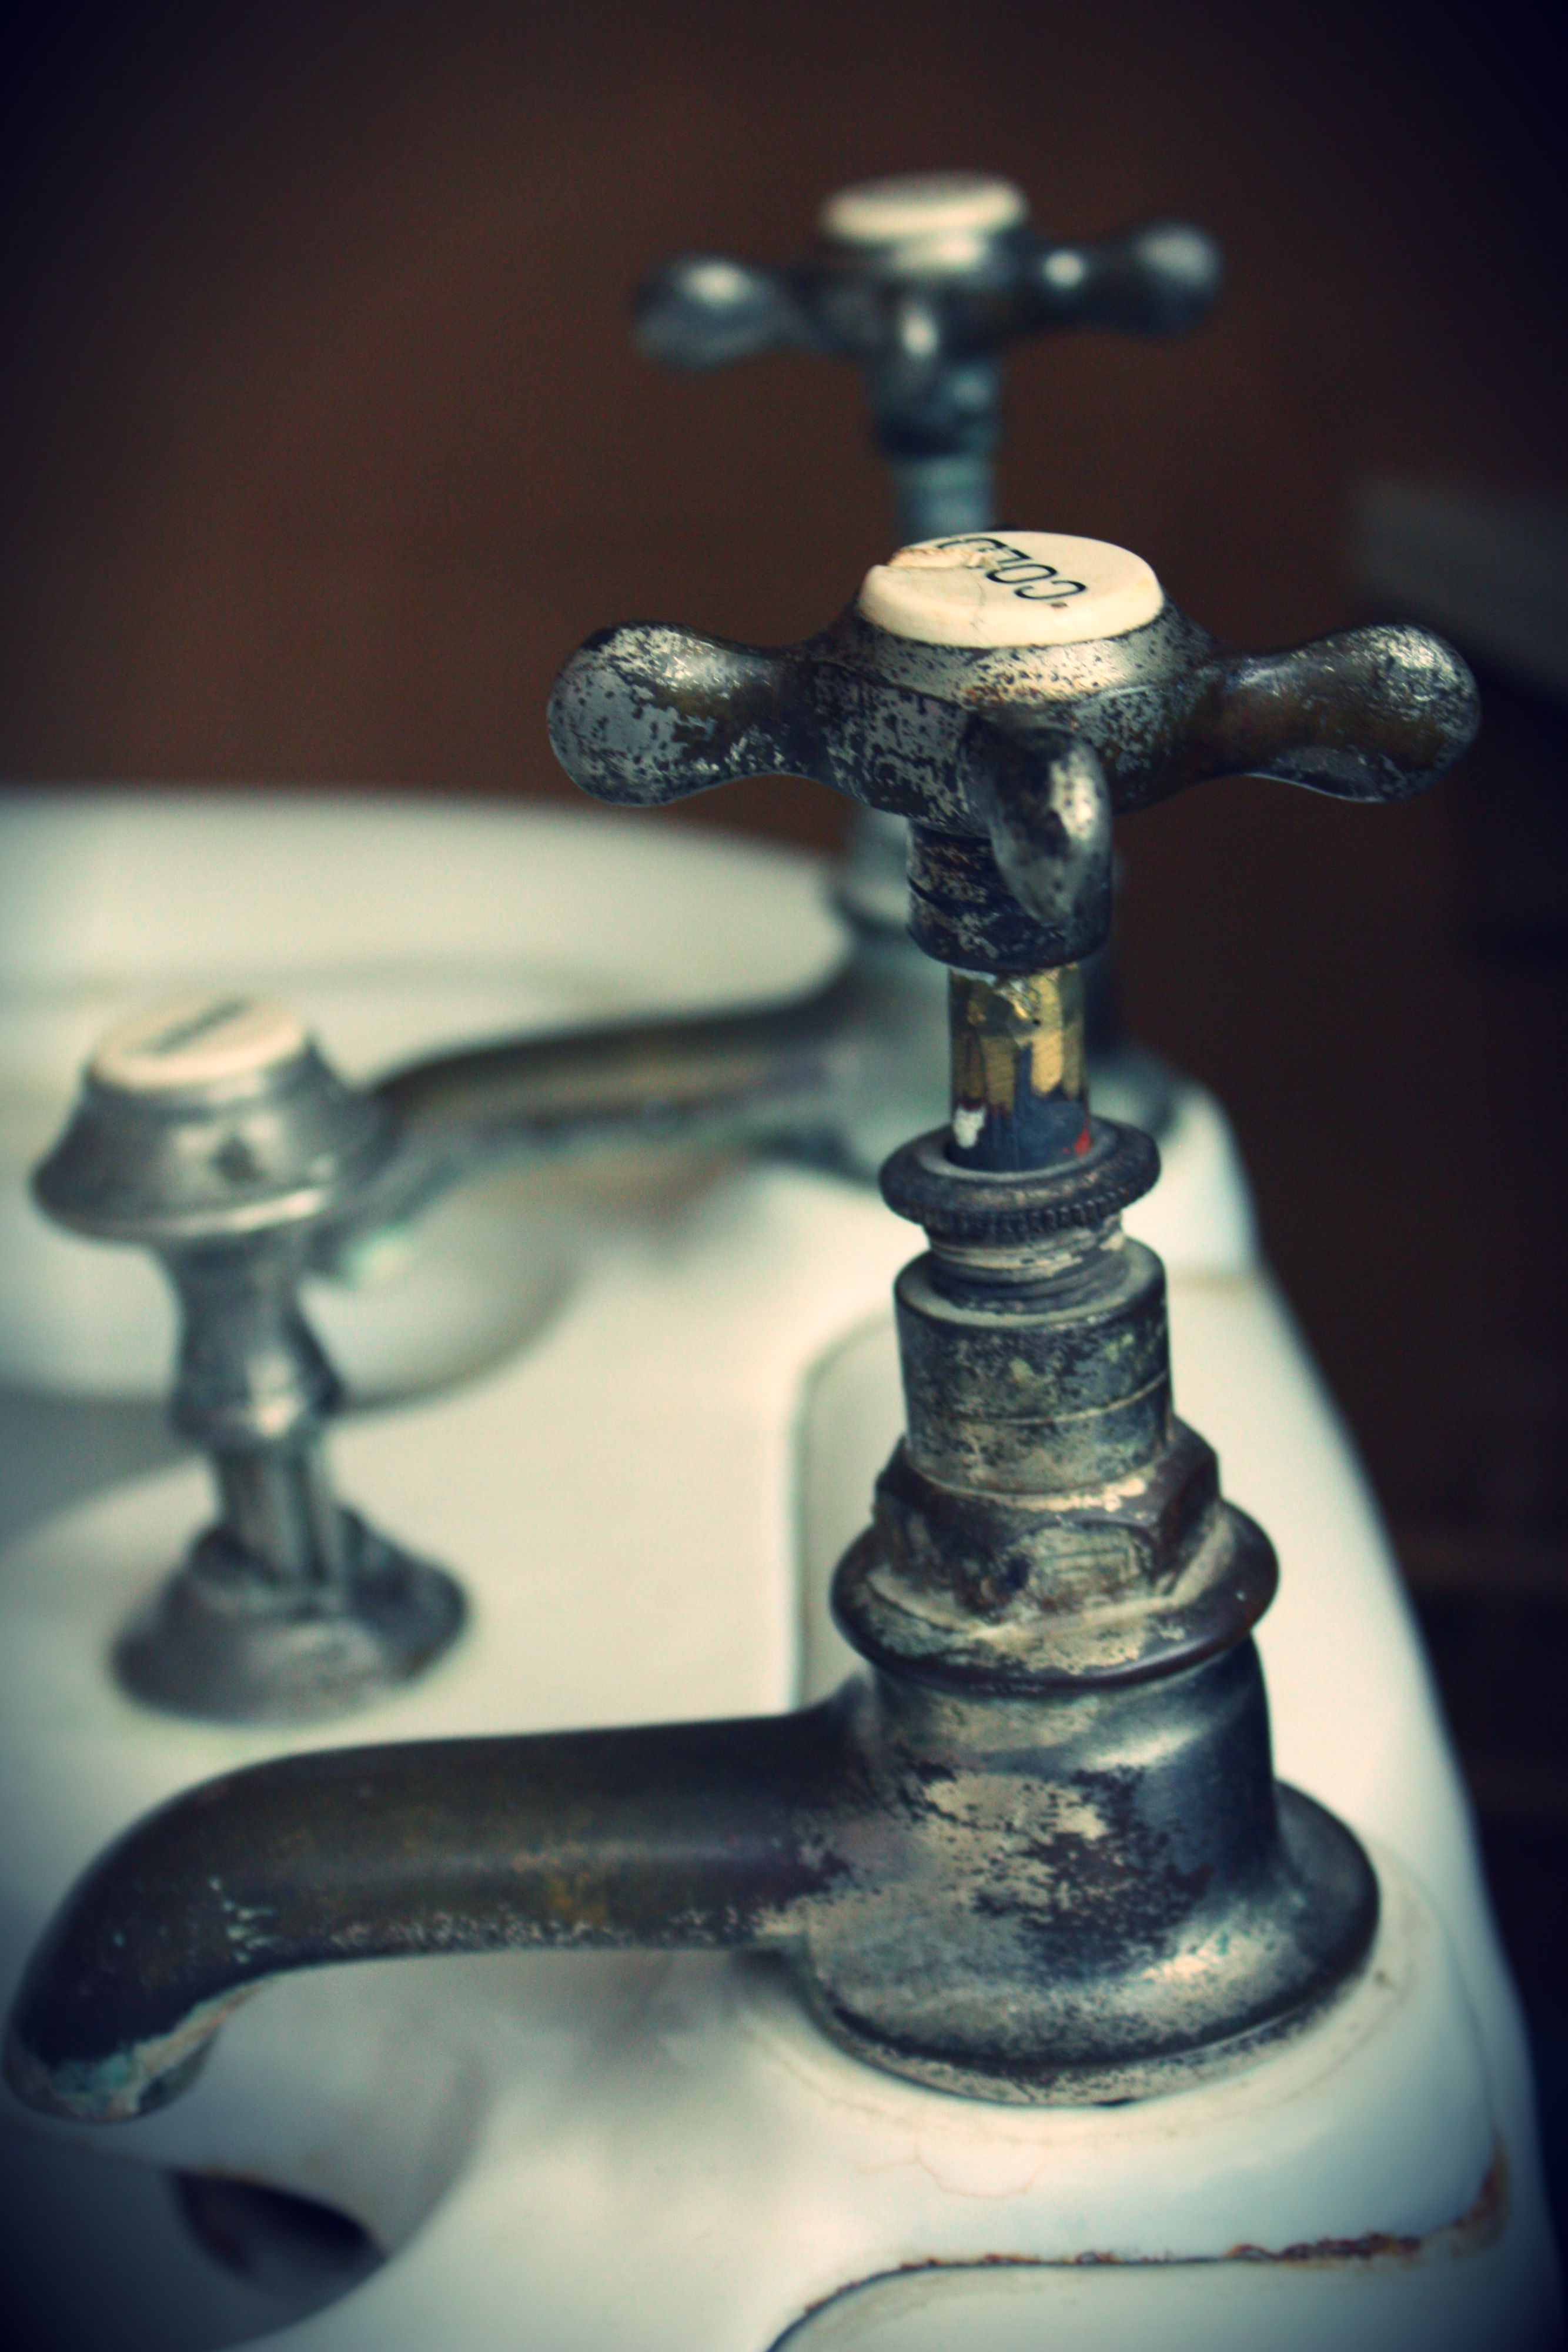 beautiful old taps | Interesting | Pinterest | Taps, Country charm ...